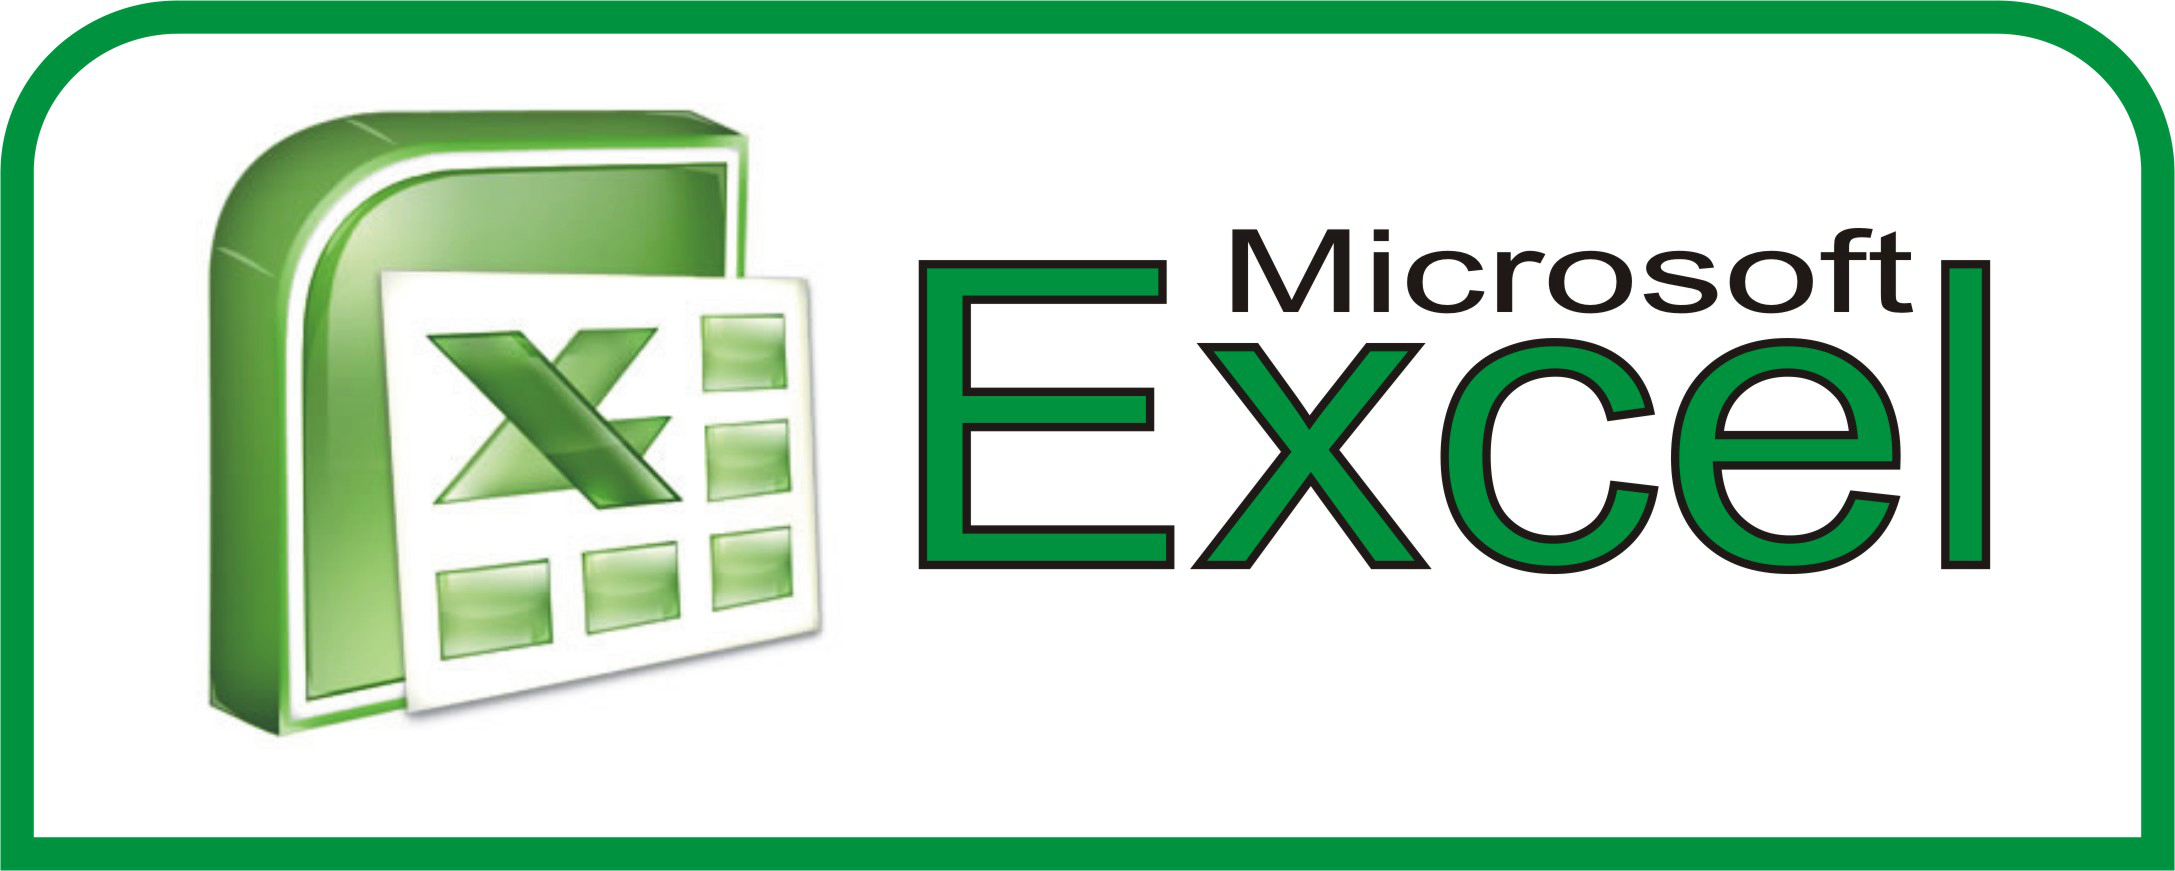 Ediblewildsus  Pretty  Excel Shortcuts You Probably Didnt Know About  Techdissected With Luxury Find Duplicates In Excel Besides If Function Excel Furthermore Excel Match With Alluring Excel Functions Also Vlookup Excel In Addition Google Excel And How To Subtract In Excel As Well As Weighted Average Excel Additionally Excel For Dummies From Techdissectedcom With Ediblewildsus  Luxury  Excel Shortcuts You Probably Didnt Know About  Techdissected With Alluring Find Duplicates In Excel Besides If Function Excel Furthermore Excel Match And Pretty Excel Functions Also Vlookup Excel In Addition Google Excel From Techdissectedcom